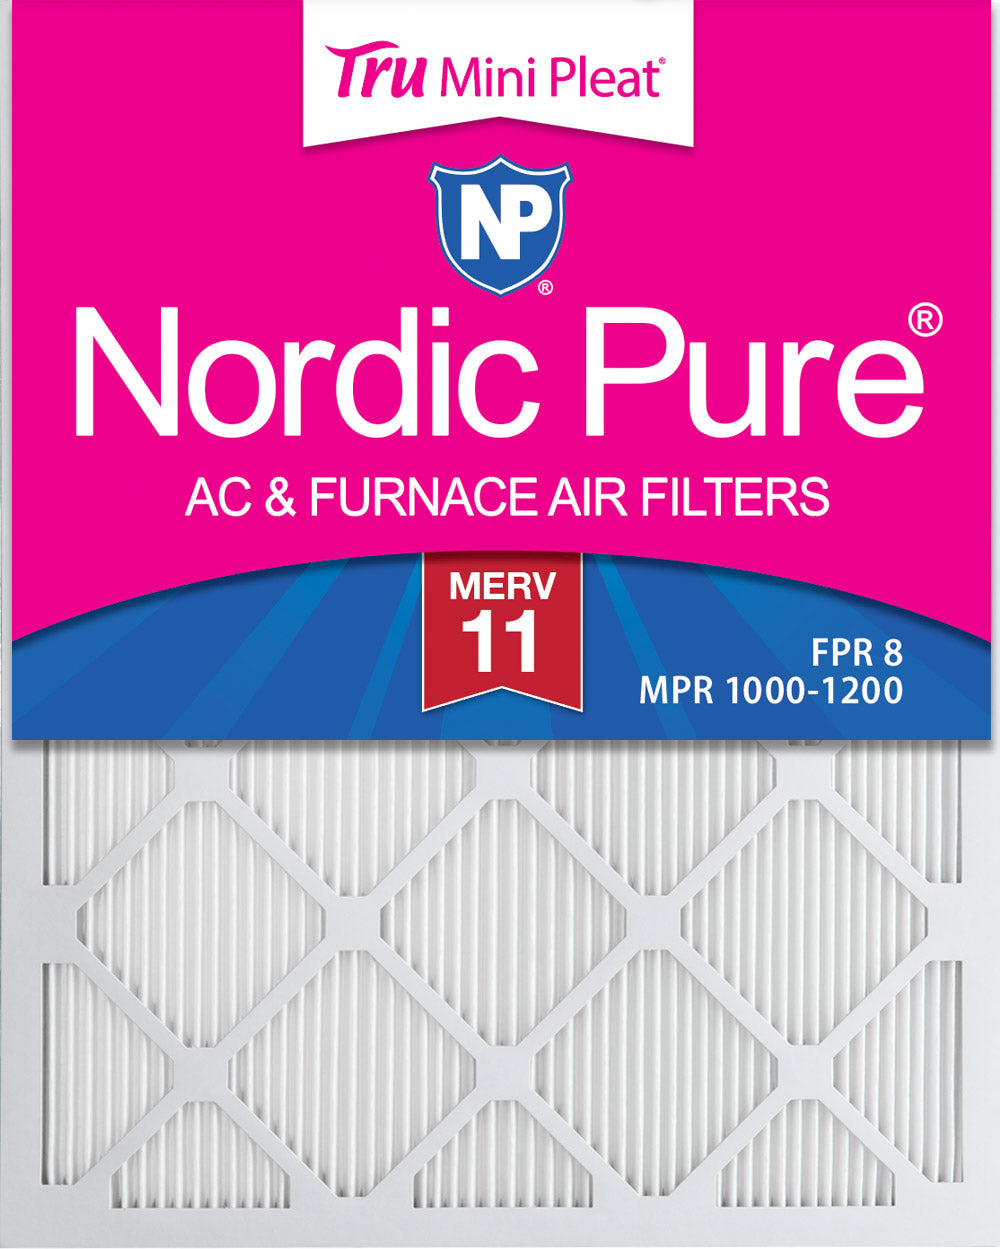 20x24x1 Tru Mini Pleat MERV 11 AC Furnace Air Filters 3 Pack